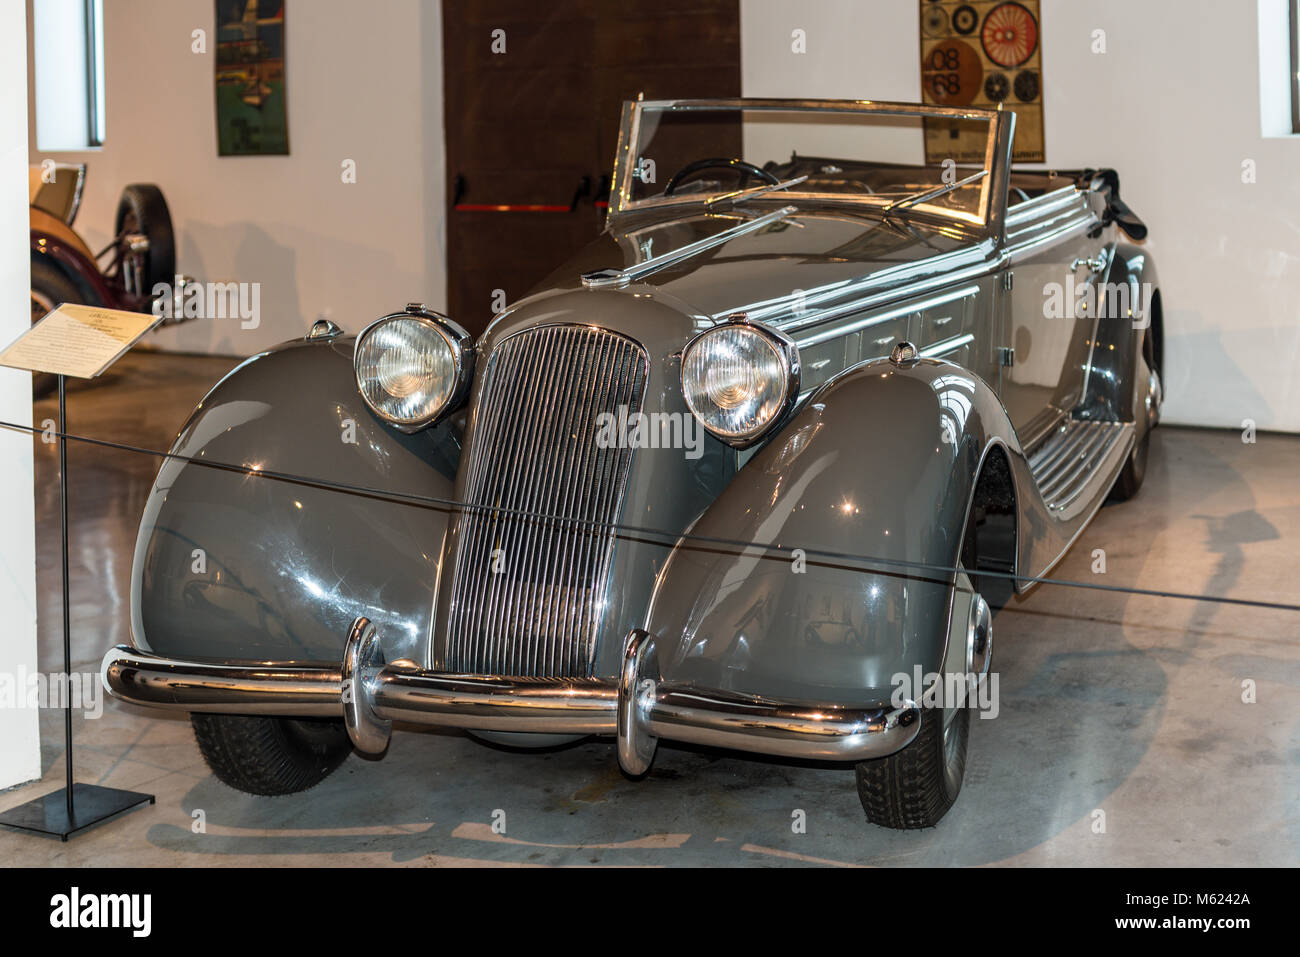 Malaga, Spain - December 7, 2016: Lancia Italy 1934 (Mussolini's parade car) in Automobile Museum of Malaga, - Stock Image